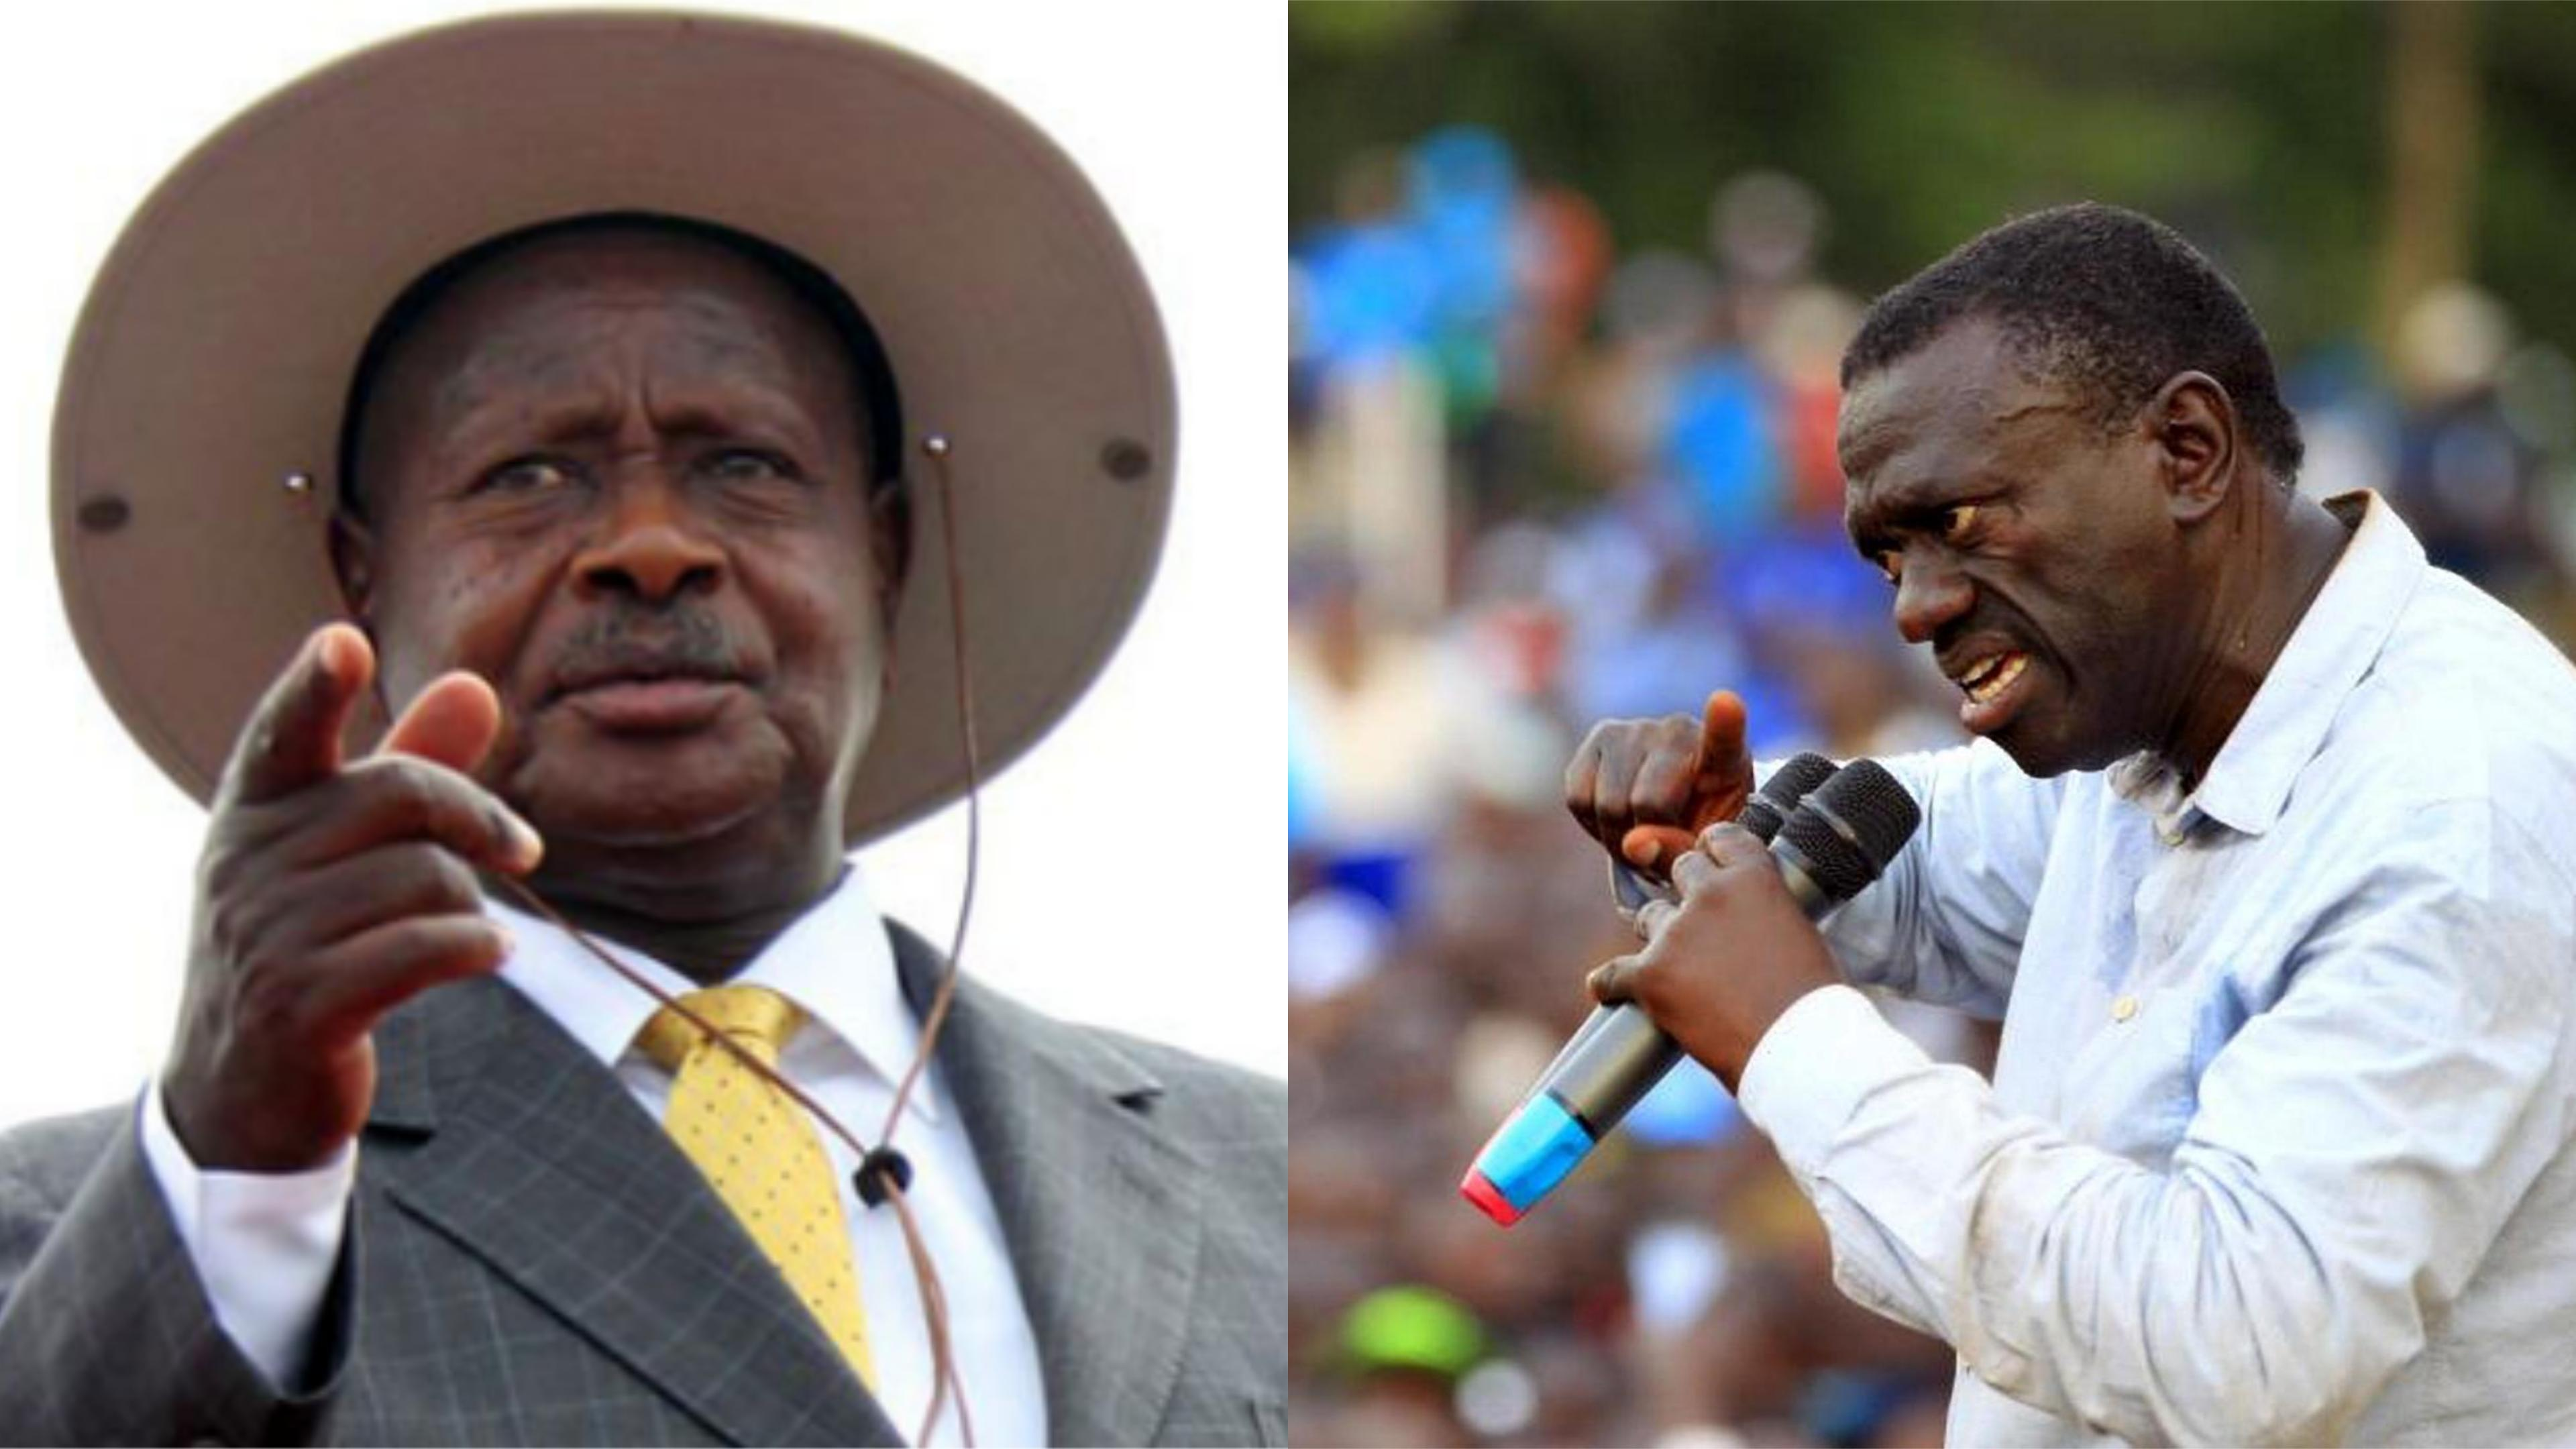 NRM chairman, President Museveni and ex-FDC party President Dr. Kizza Besigye camp in Arua to canvas votes for their candidates ahead of the hotly contested Arua Municapality MP by-elections (FILE PHOTO)